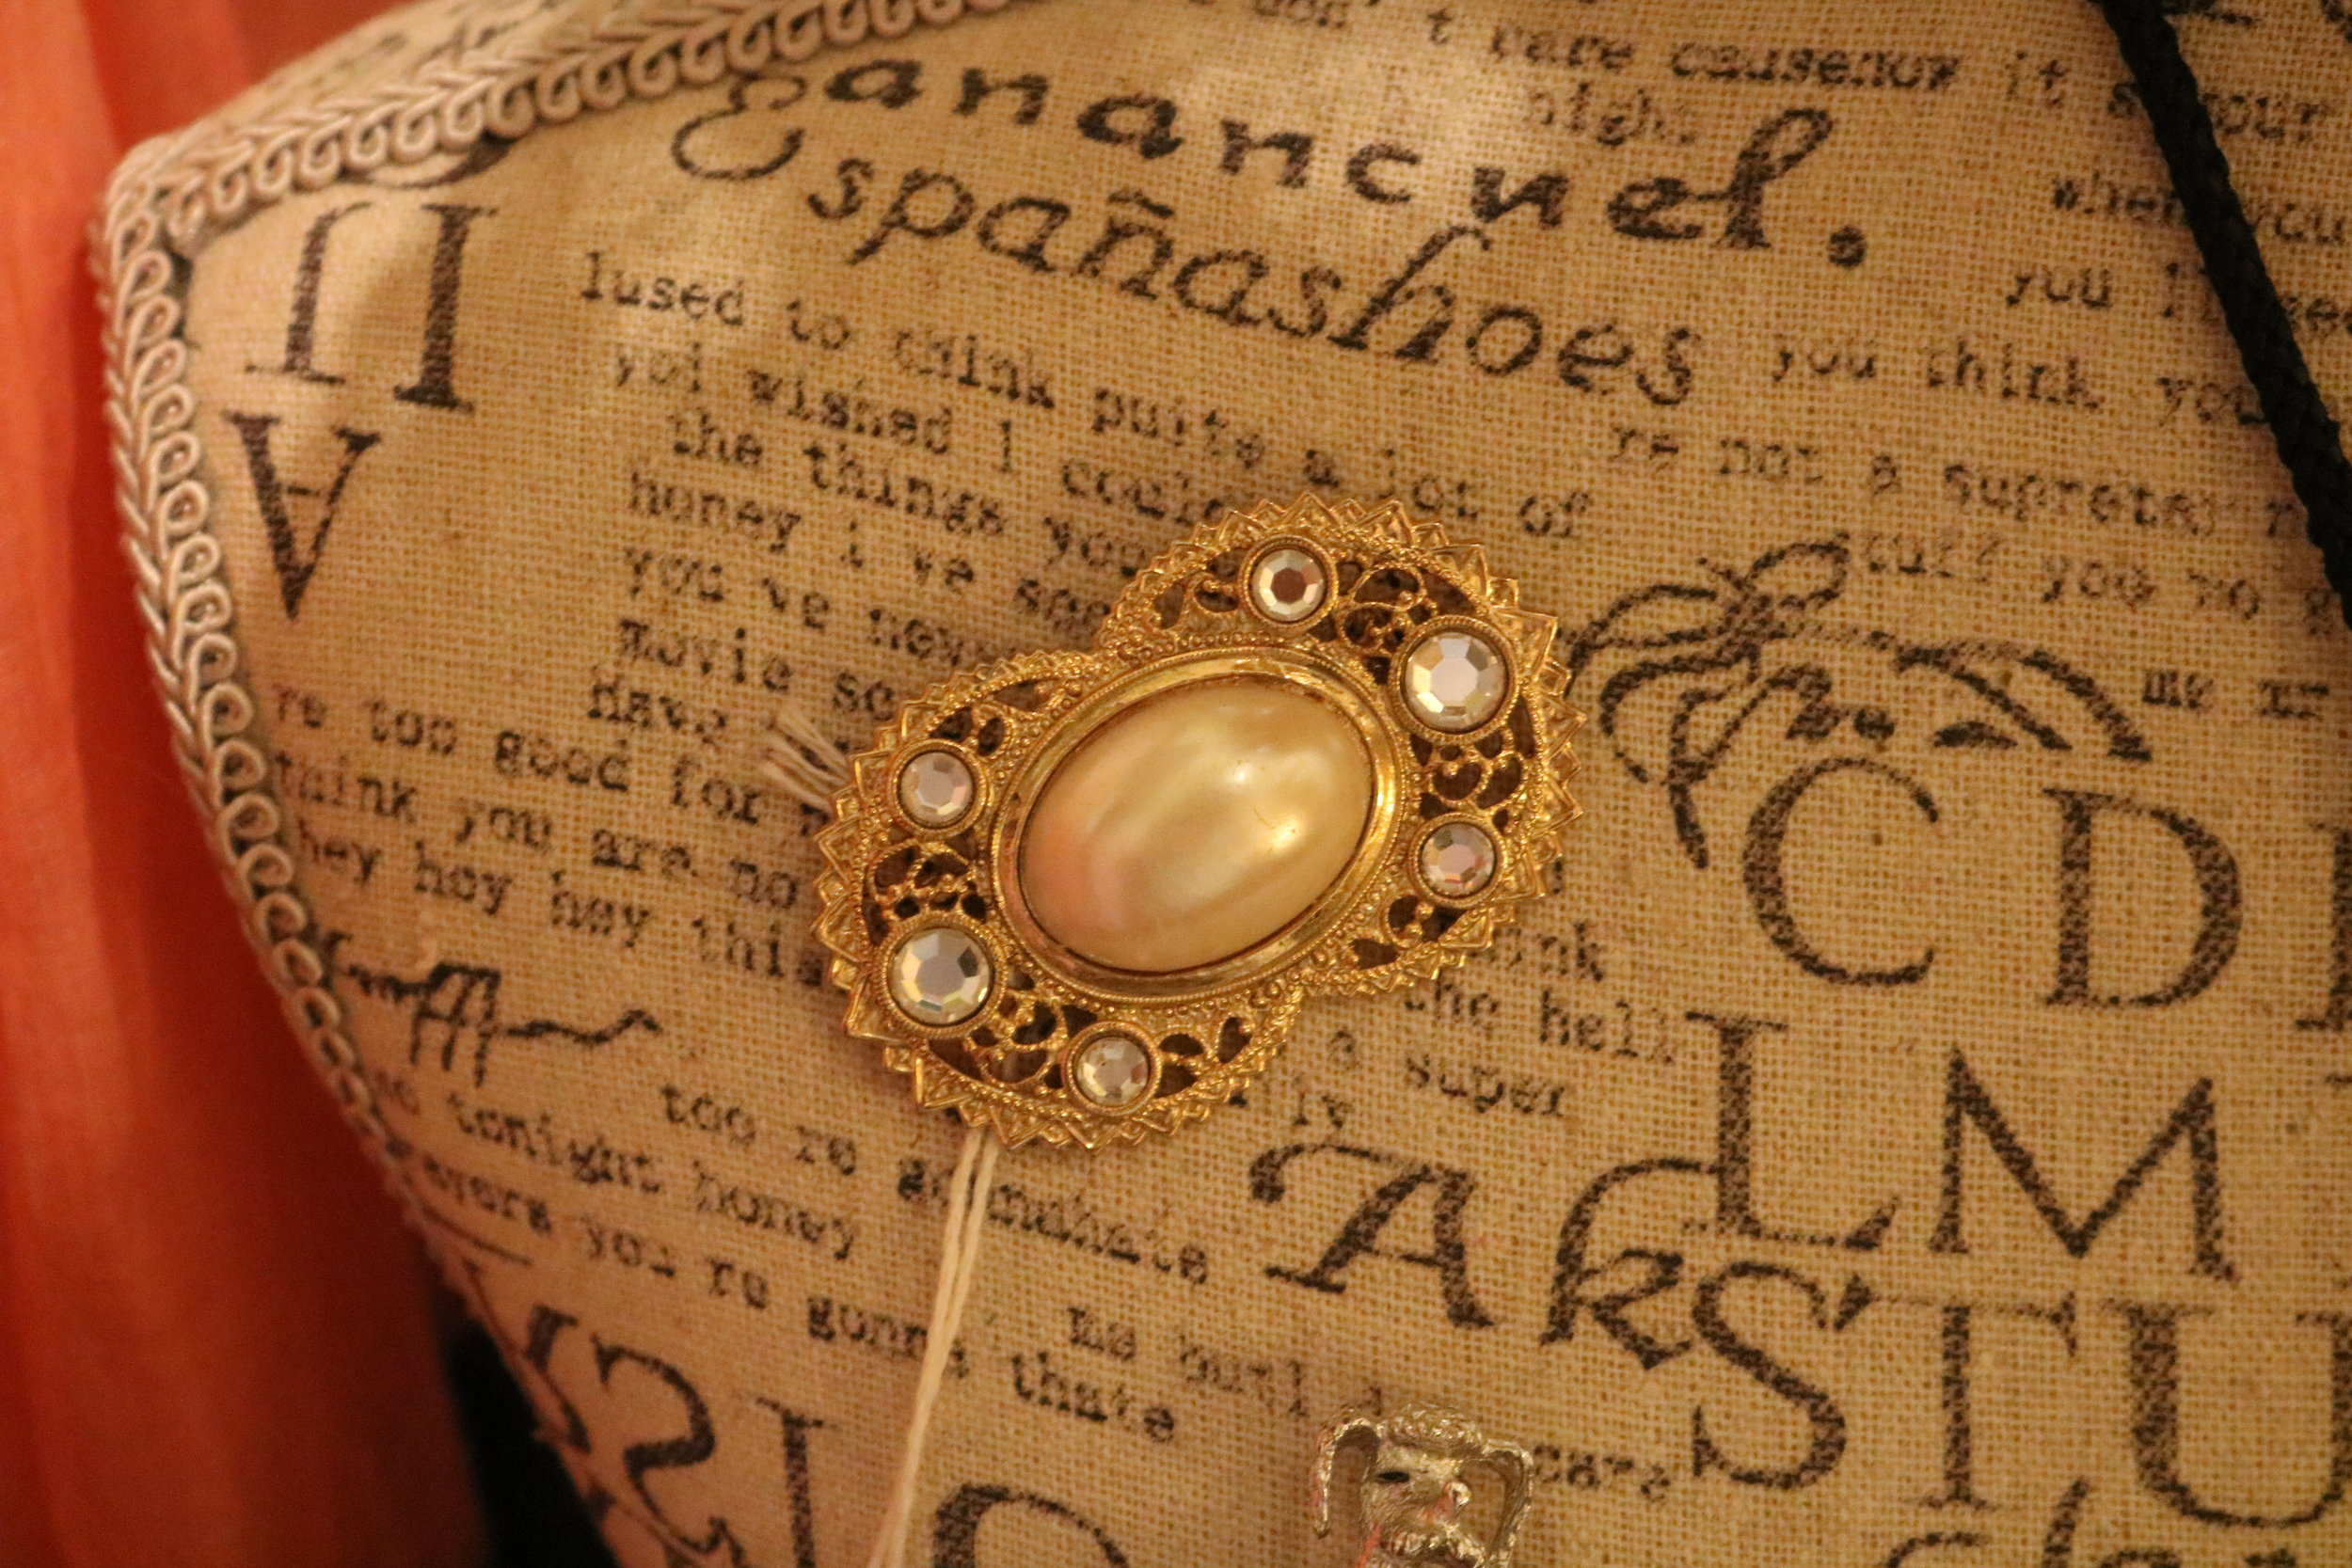 A gold and pearl broach pinned on a mannequin.